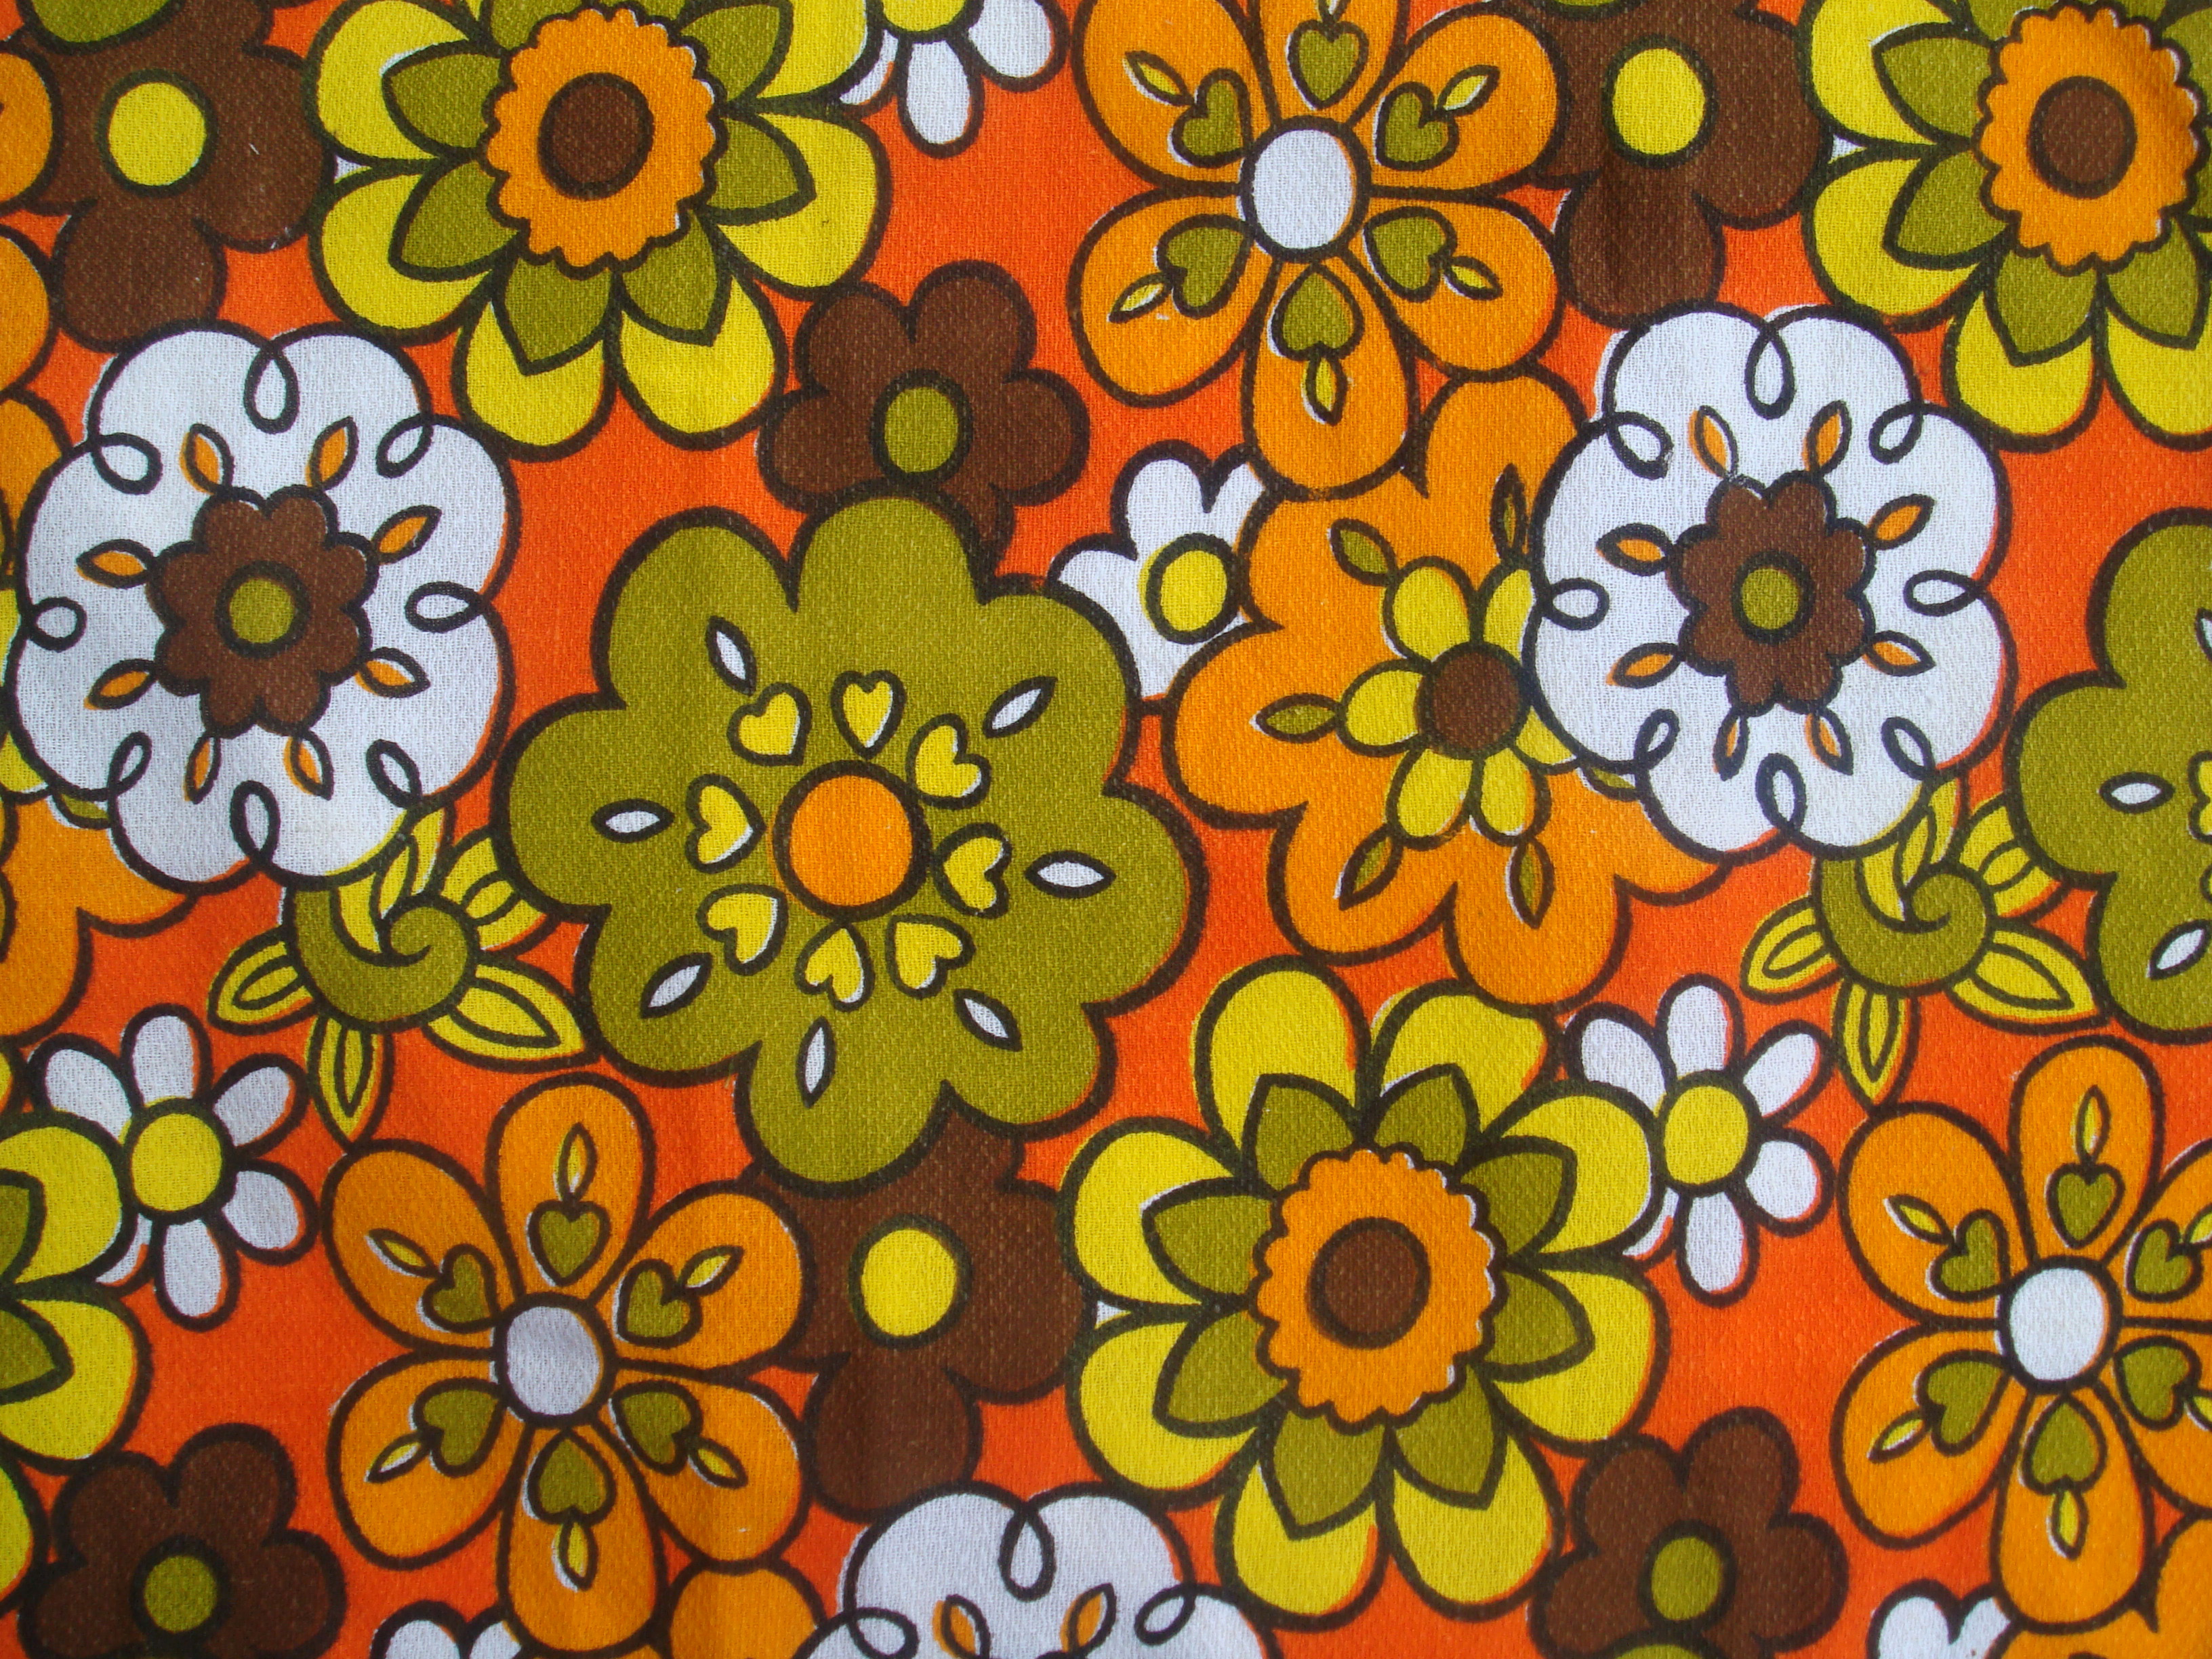 60s background patterns the - photo #3